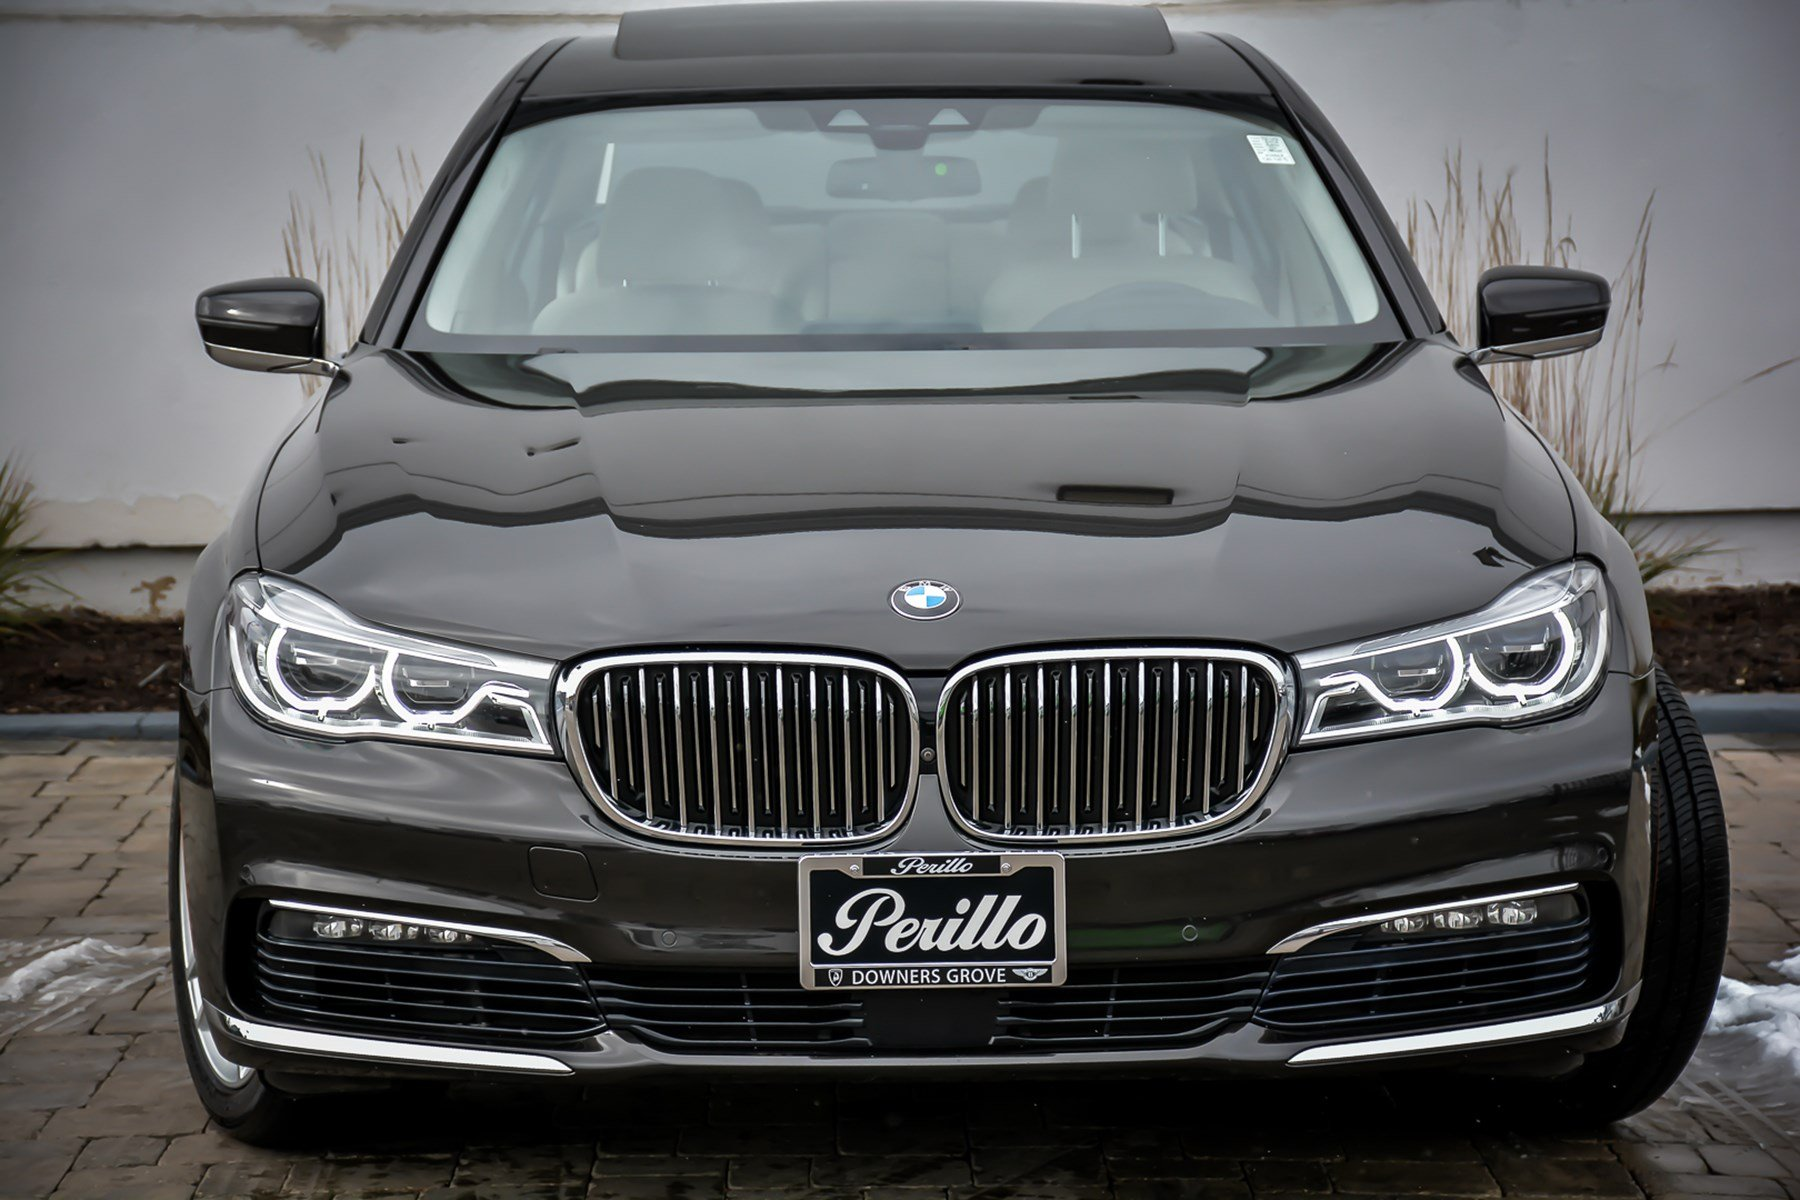 Pre Owned 2016 BMW 7 Series 750i xDrive Executive 4dr Car in Downers